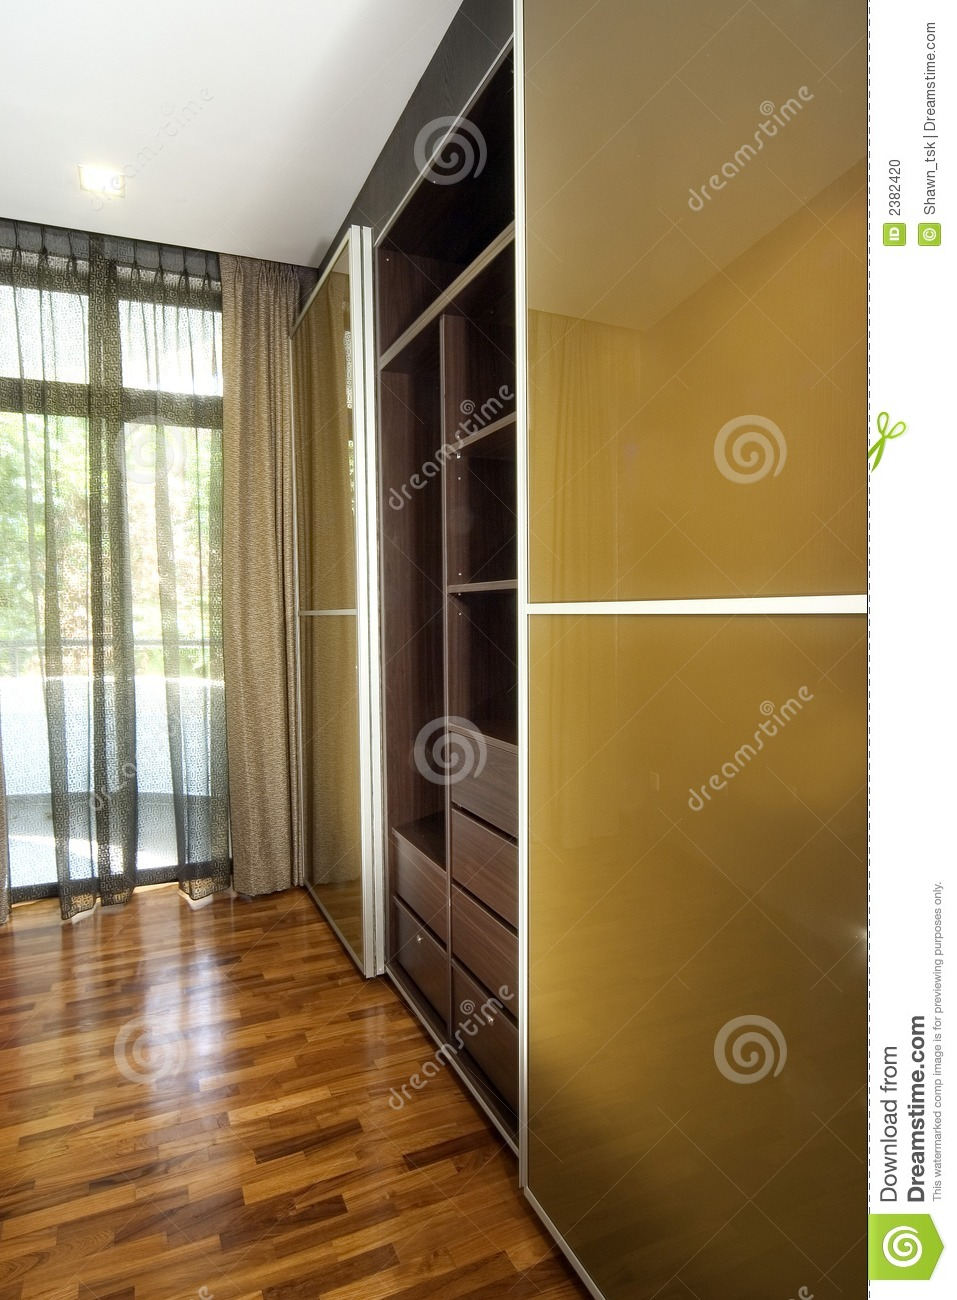 Interior design wardrobe stock photo image 2382420 for Interior decoration wardrobe designs